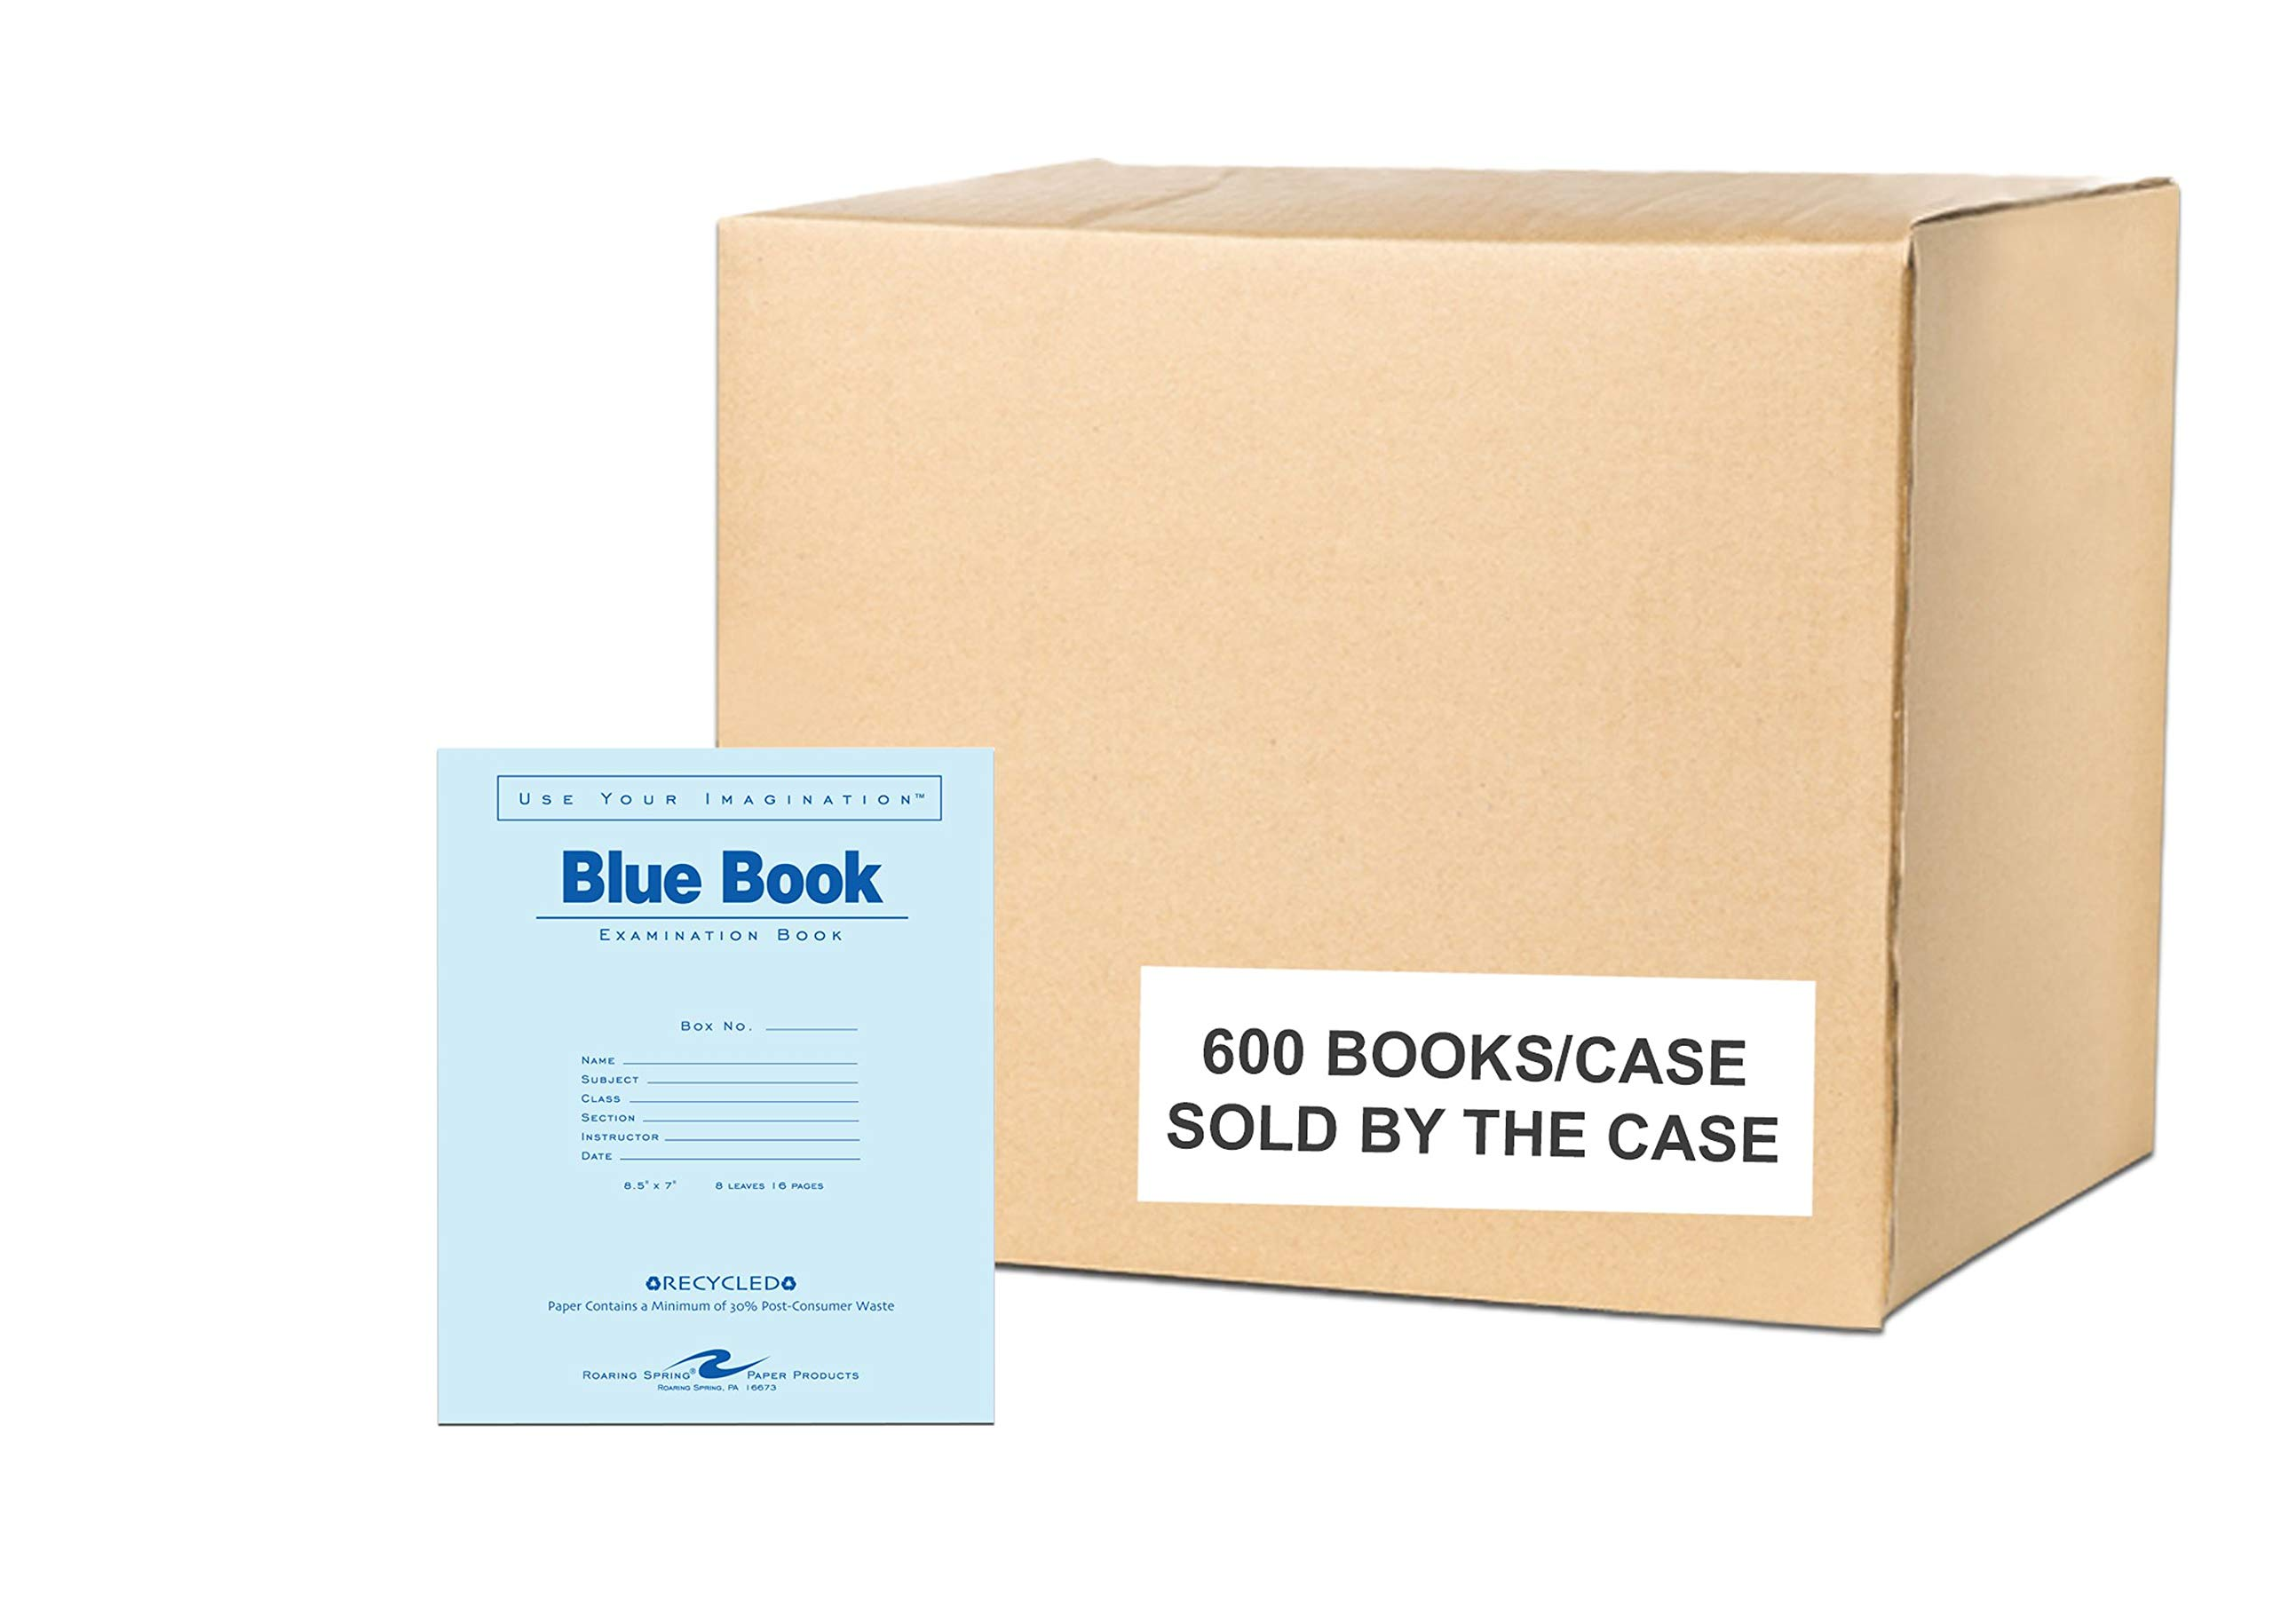 Case of 600 Exam Books, 8.5''x7'', 8 sheets/16 pages of 15# Recycled White Paper, Heavy Recycled Blue Cover, stapled by Roaring Spring